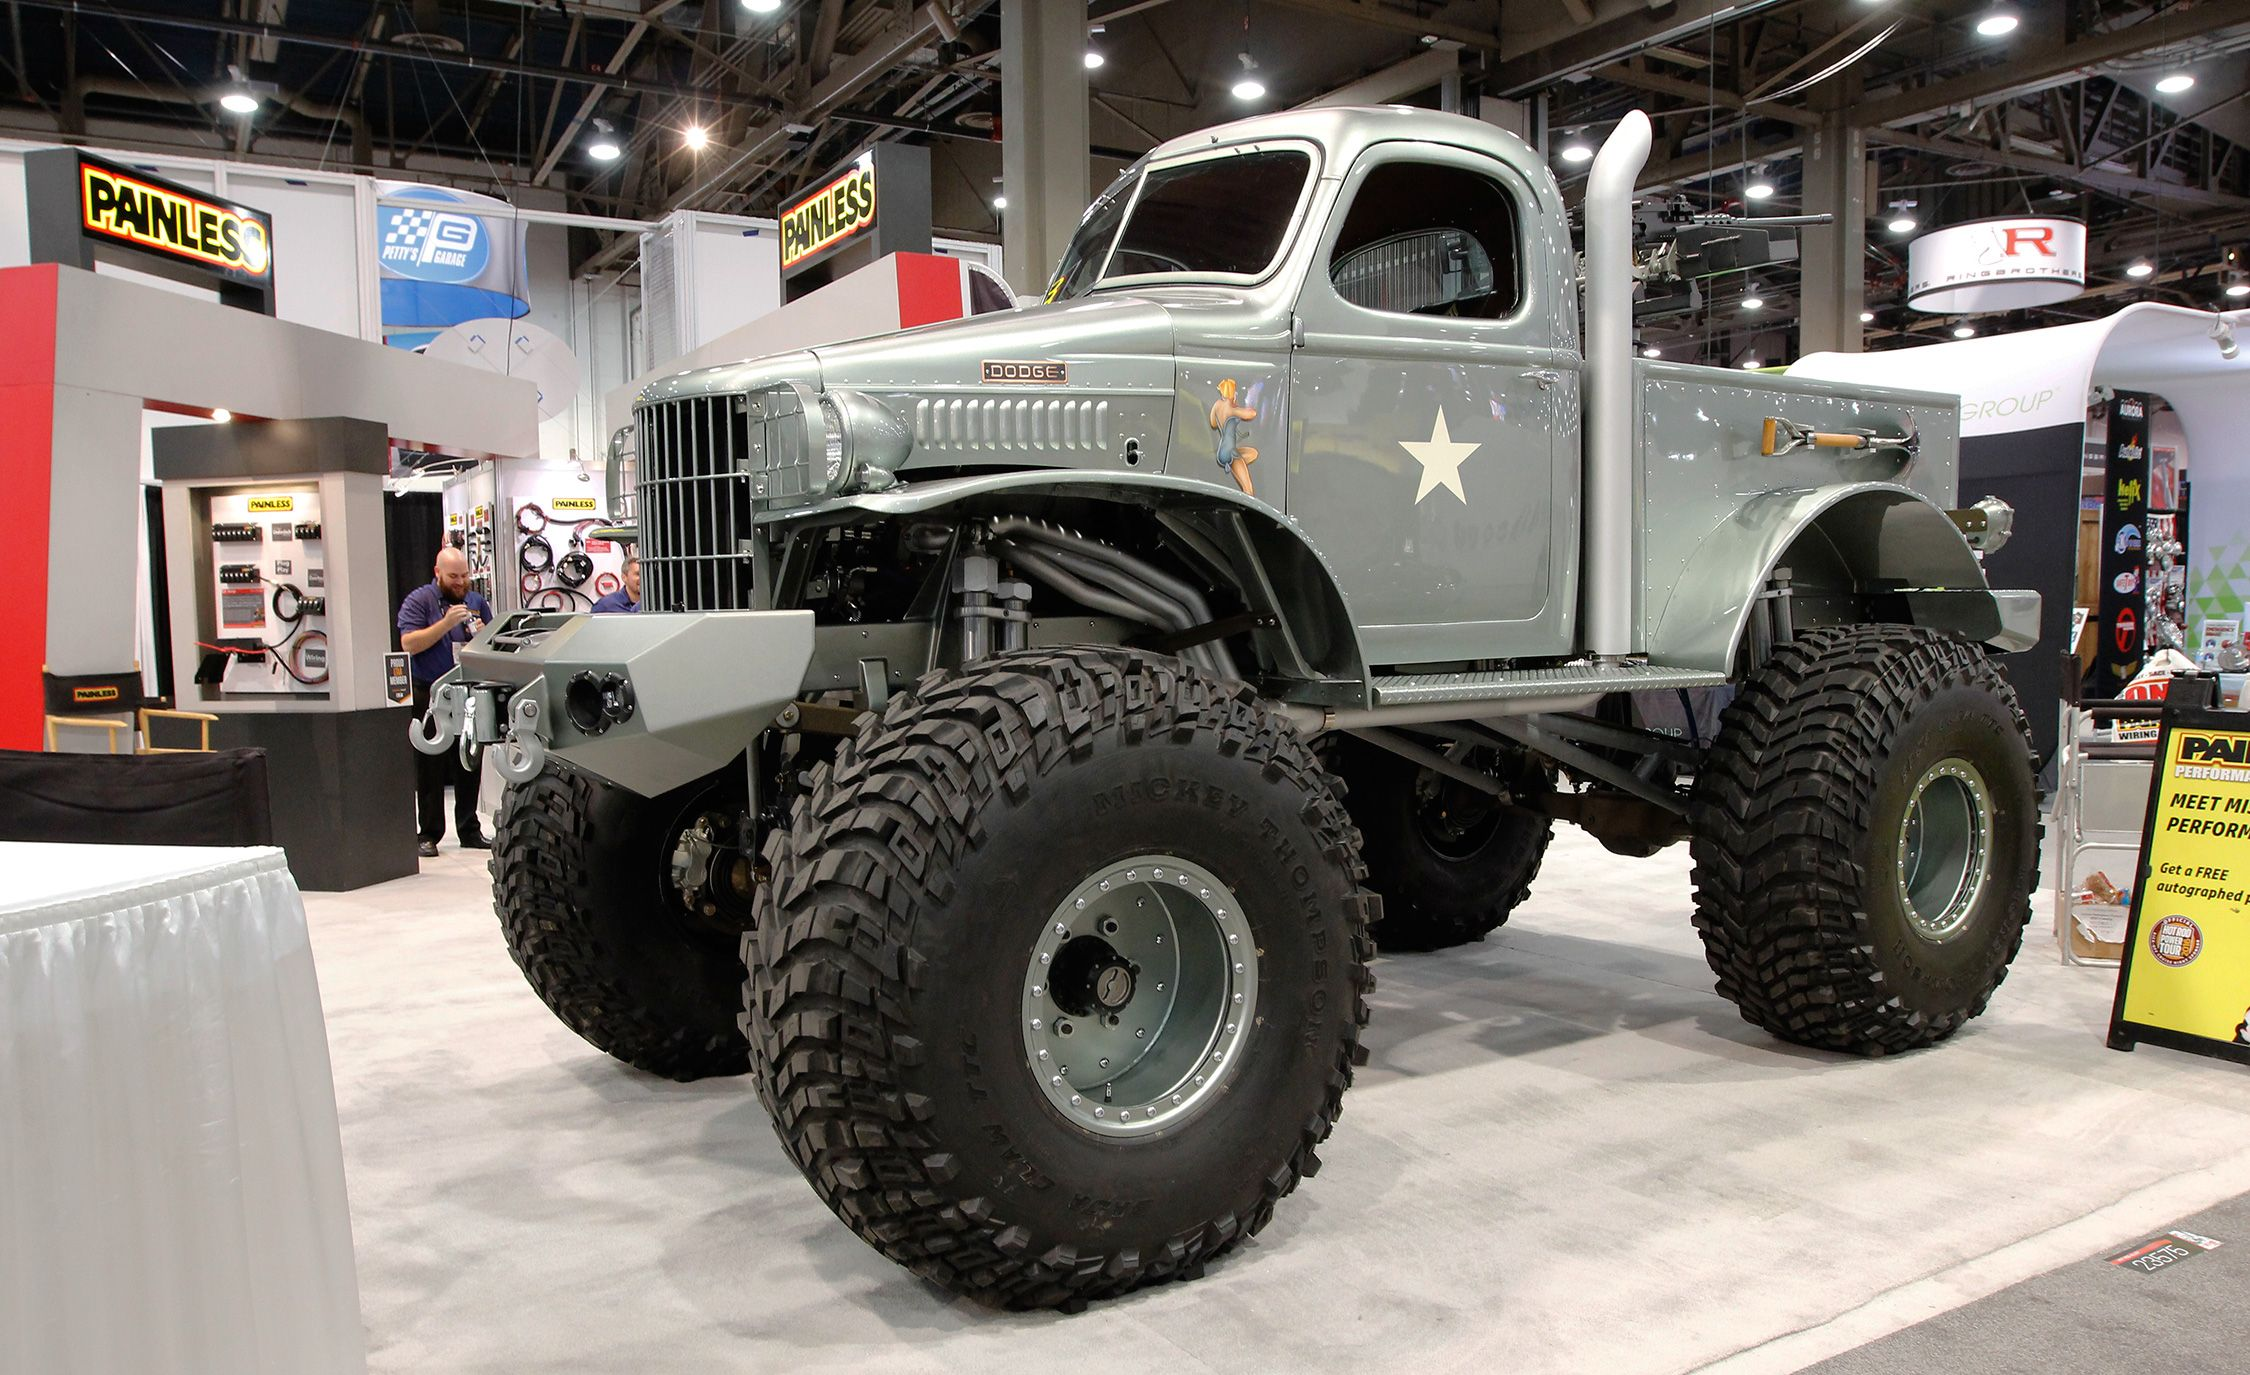 The Best Of Sema 2016 Day One A Batmobile Insane Customs And 1941 Dodge Truck Headliner Course Tank